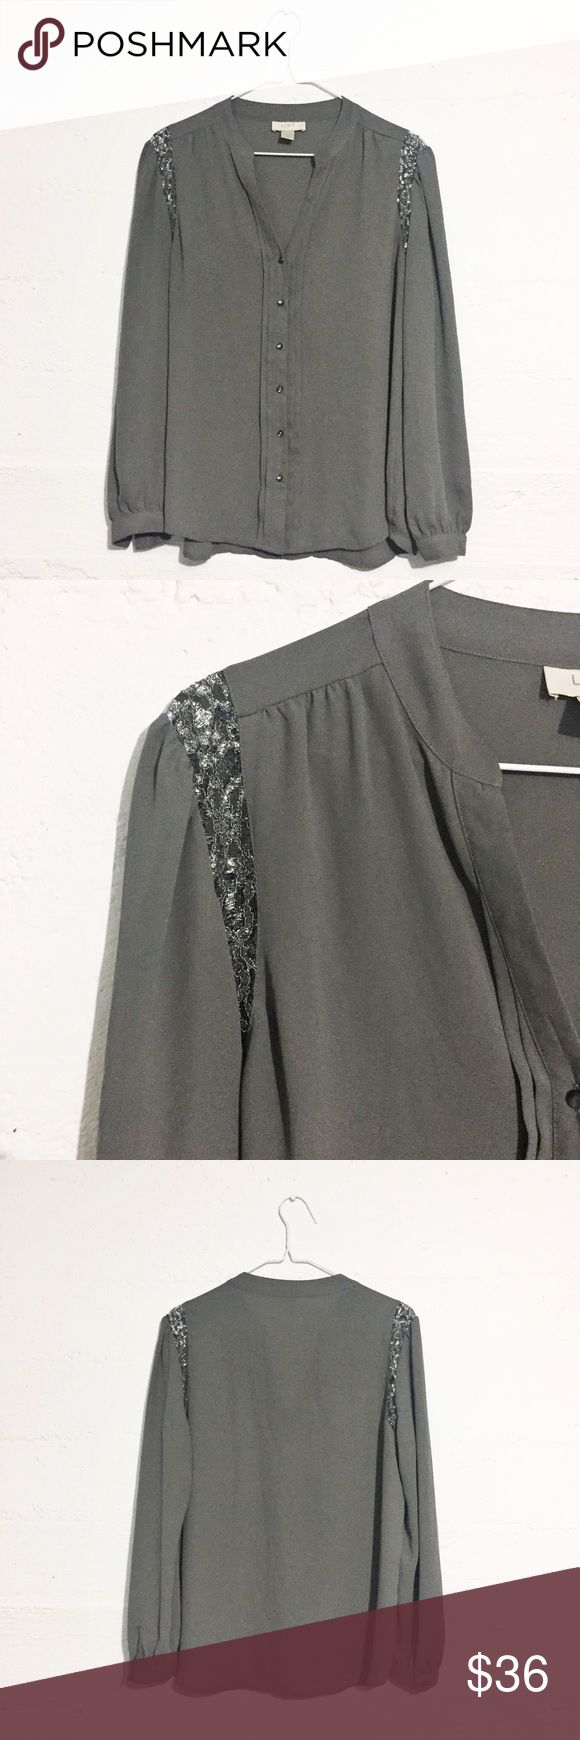 Gorgeous Gray Loft Blouse Lightweight Blouse with lace insert on shoulders. Petite sizing. Great condition. Offers accepted. No trades. LOFT Tops Button Down Shirts